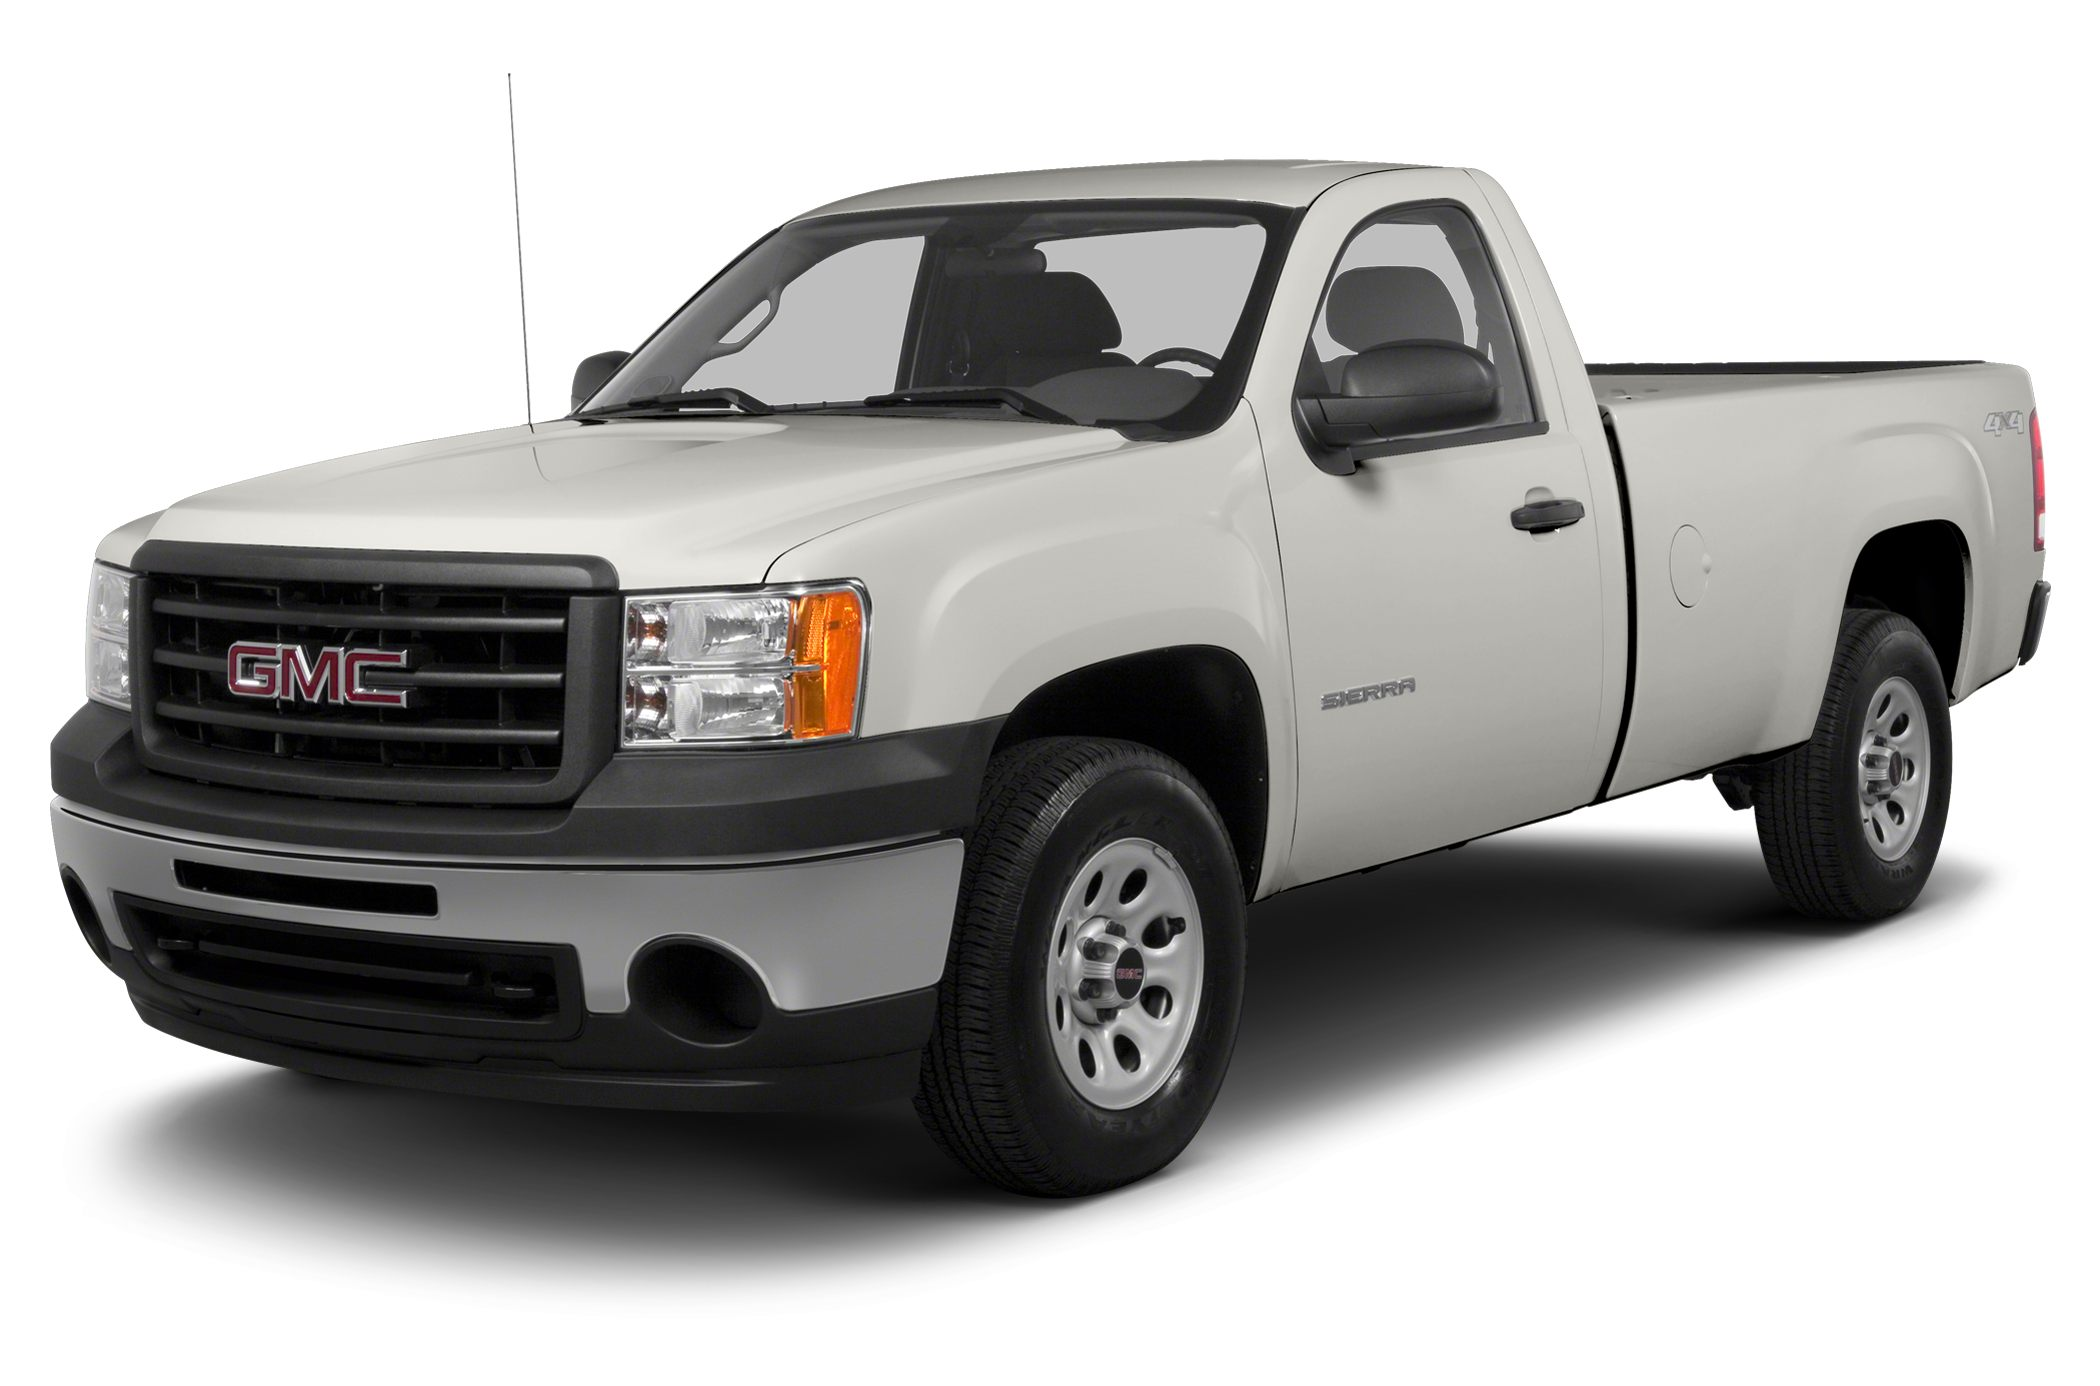 2013 GMC Sierra 1500 SLE1 Extended Cab Pickup for sale in Comanche for $0 with 31,233 miles